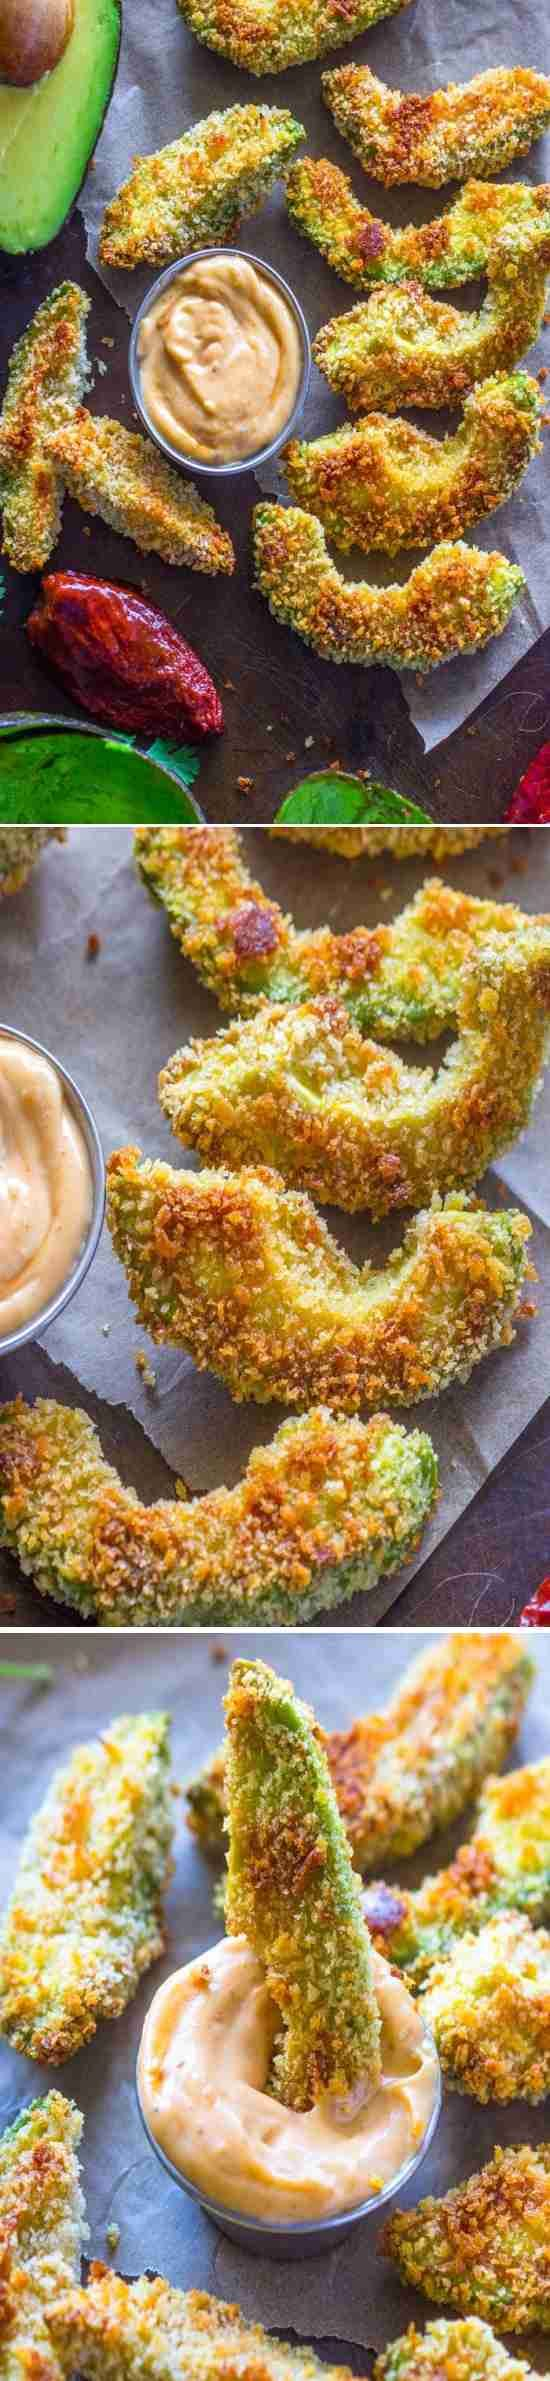 Fresh sliced avocado, coated in crispy panko breadcrumbs and baked to perfection. These avocado fries are incredibly tasty and easy …